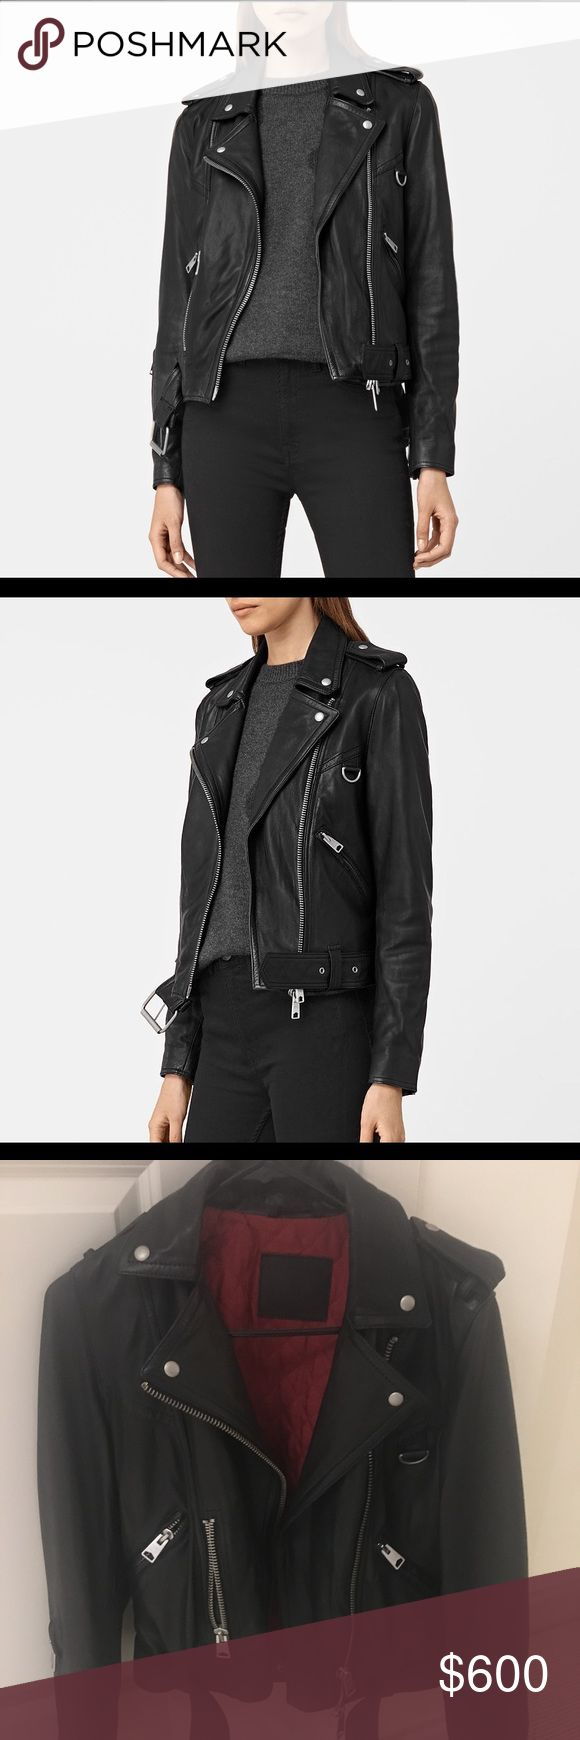 AllSaints Gidley Leather Biker Jacket Sz. US 6! SOLD OUT EVERYWHERE! ONLY LISTING ONCE! Get it while you can! Only worn twice. Basically new. Originally $650. Make your offers! ONLY SELLING THROUGH 🅿️🅿️. Please message me if interested:-) All Saints Jackets & Coats